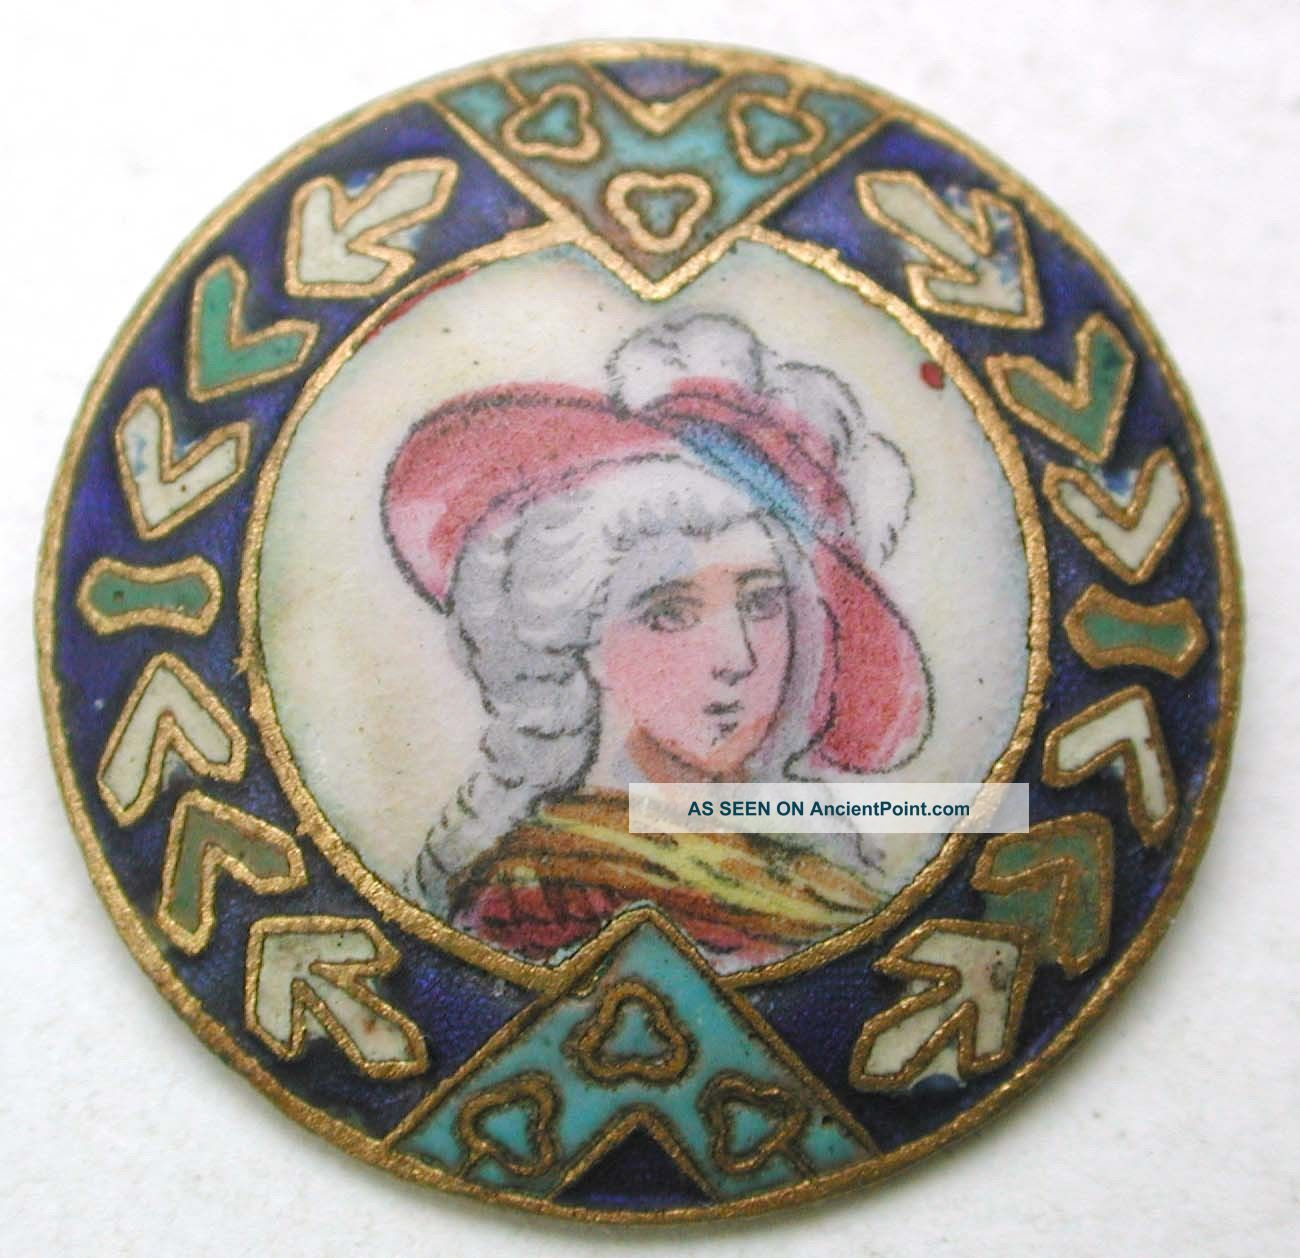 Antique French Enamel Button Detailed Hand Paint Woman Design - 7/8